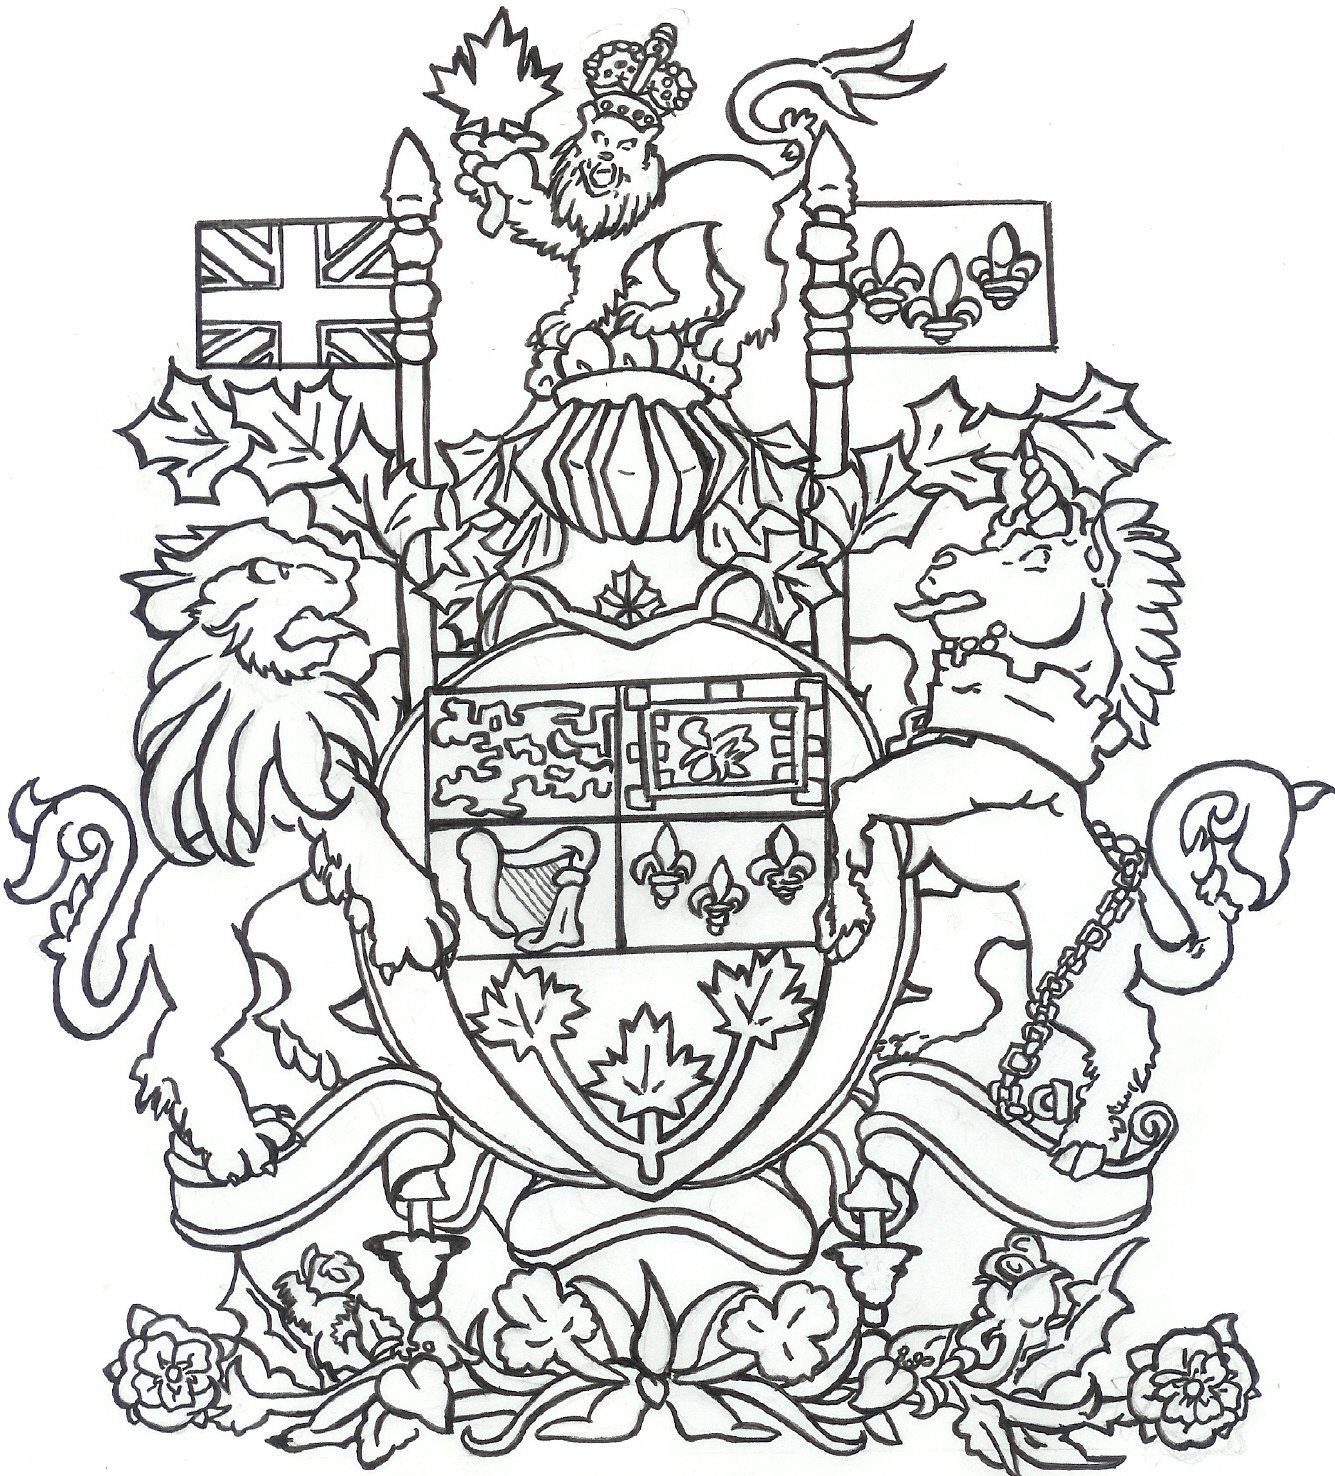 1335x1476 A Coat Of Arms. By Sunshinecrayon